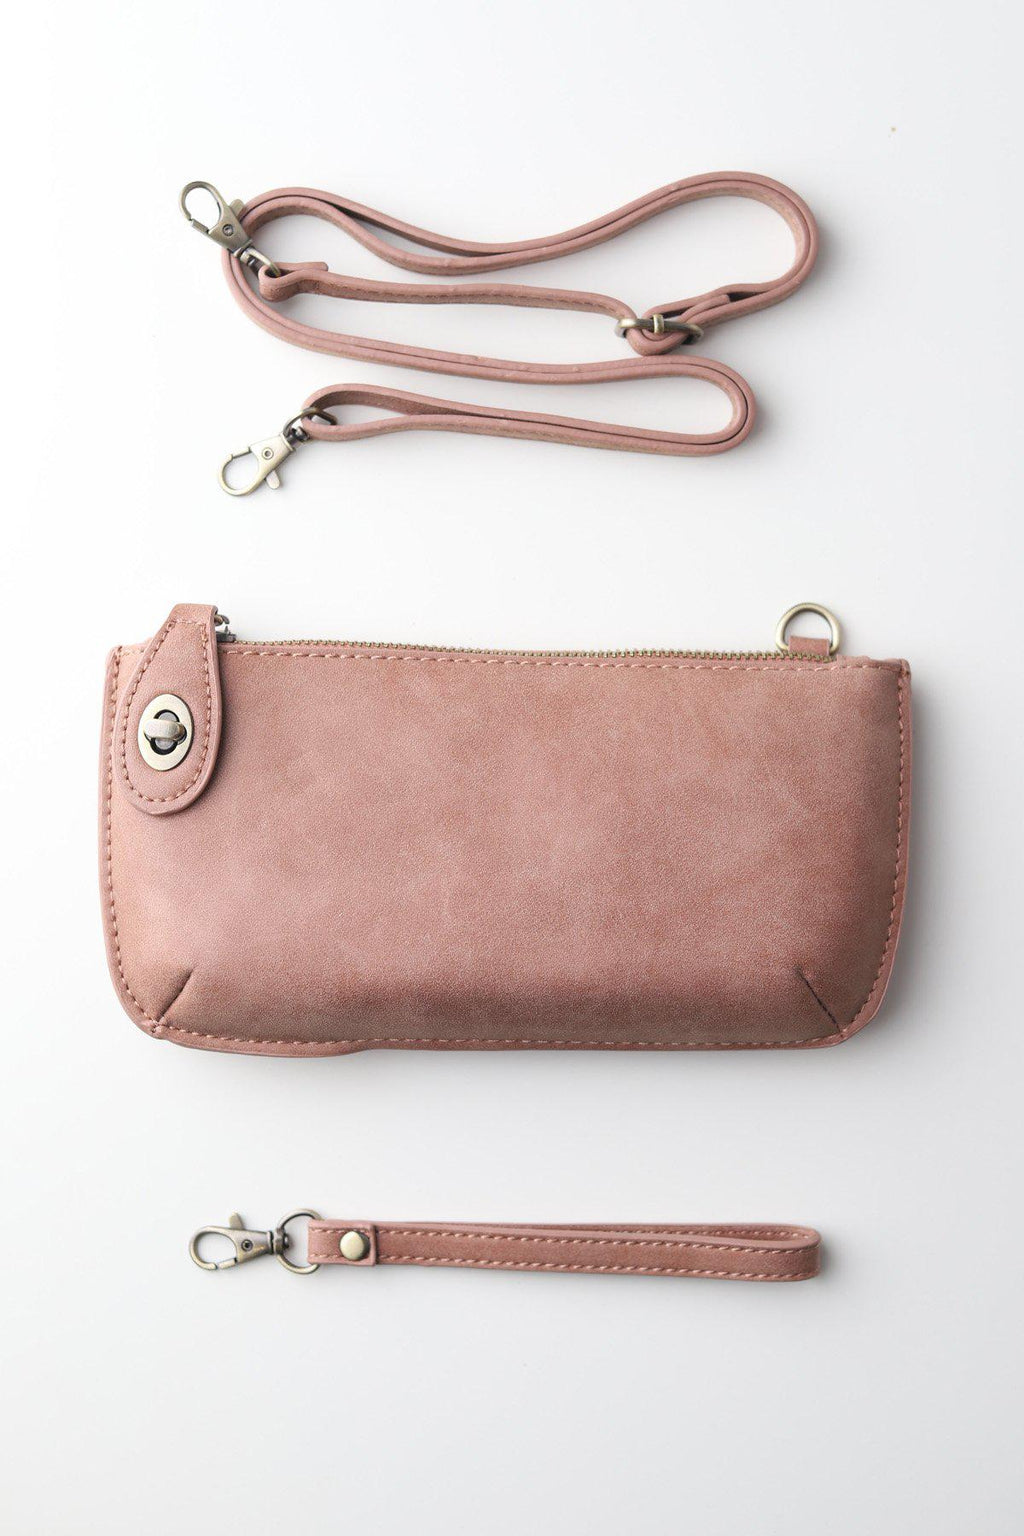 Faux Suede Wristlet Clutch / Dusty Blush - Gallery 512 Boutique